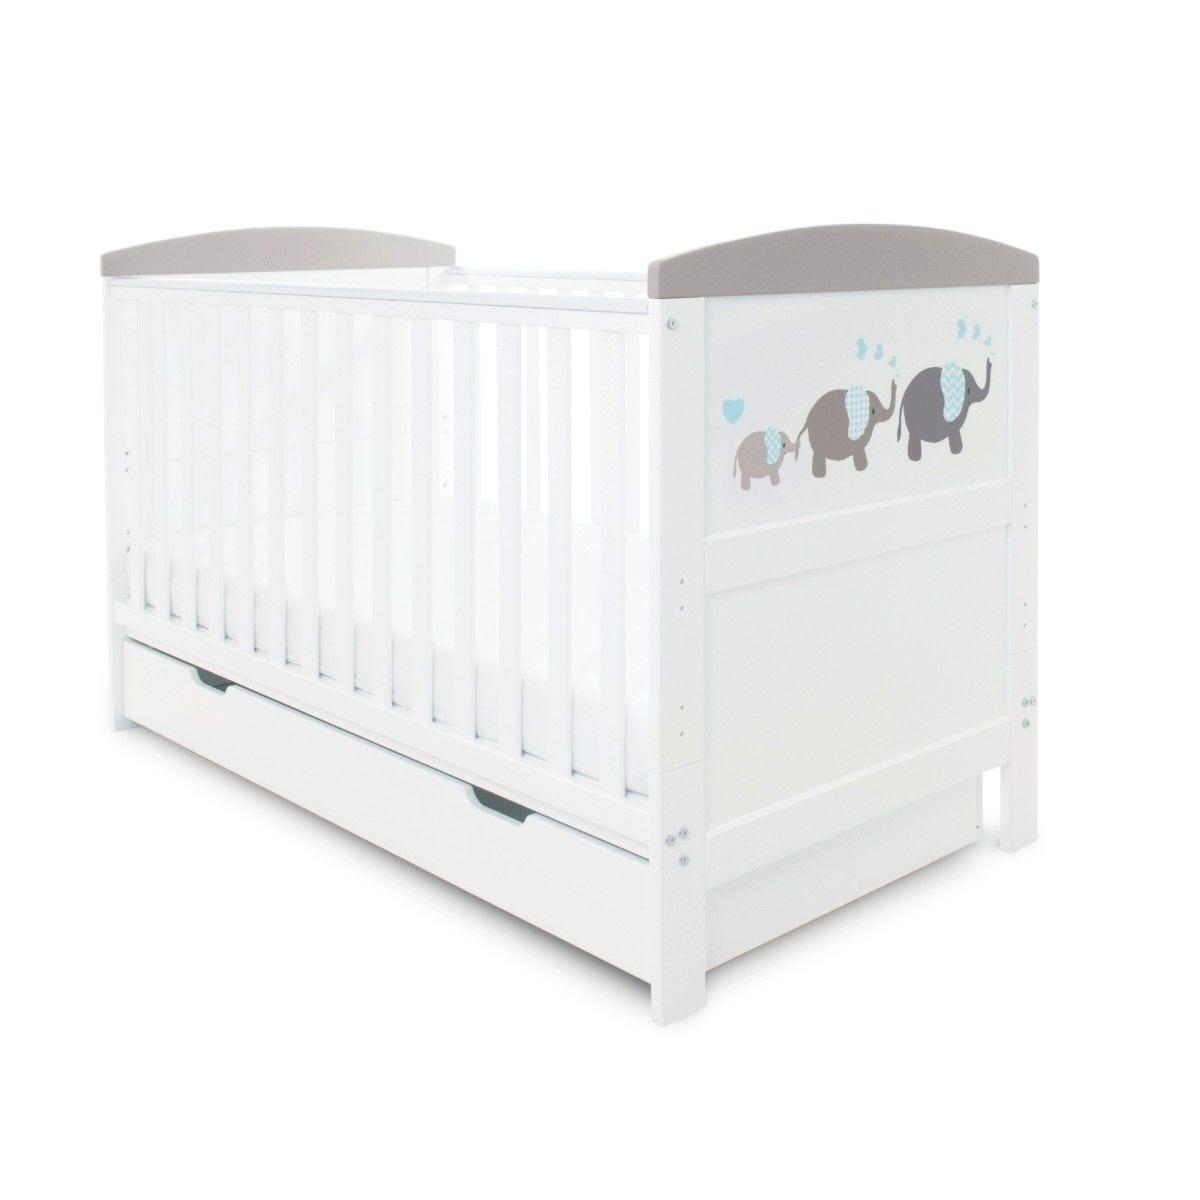 Ickle Bubba Coleby Style Cot Bed, Under Drawer and Pocket Sprung Mattress Elephant Love Grey